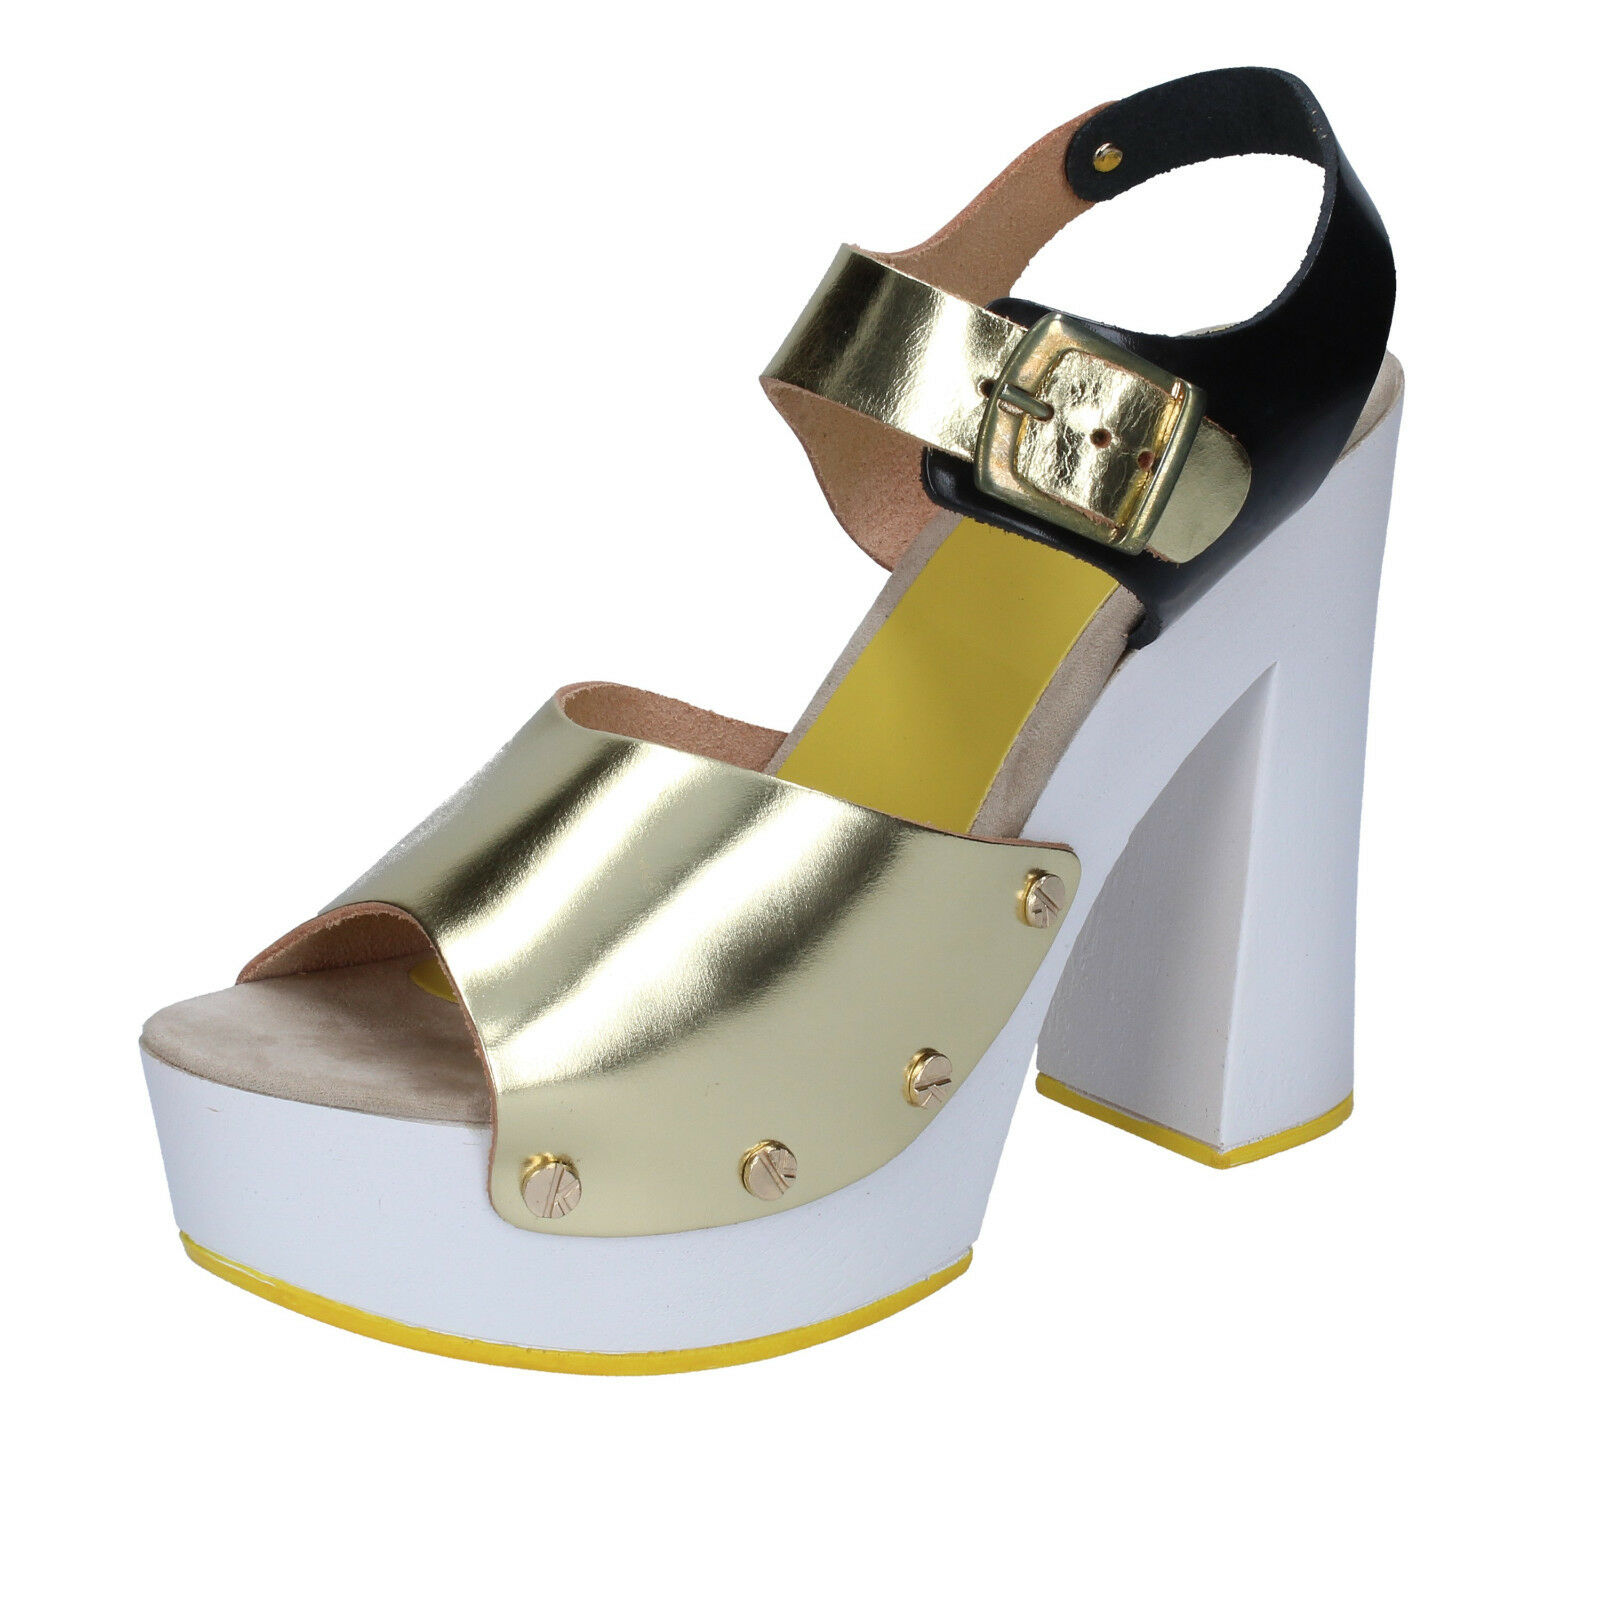 Women's shoes SUKY BRAND 9 (EU 39) sandals gold black leather BS17-39